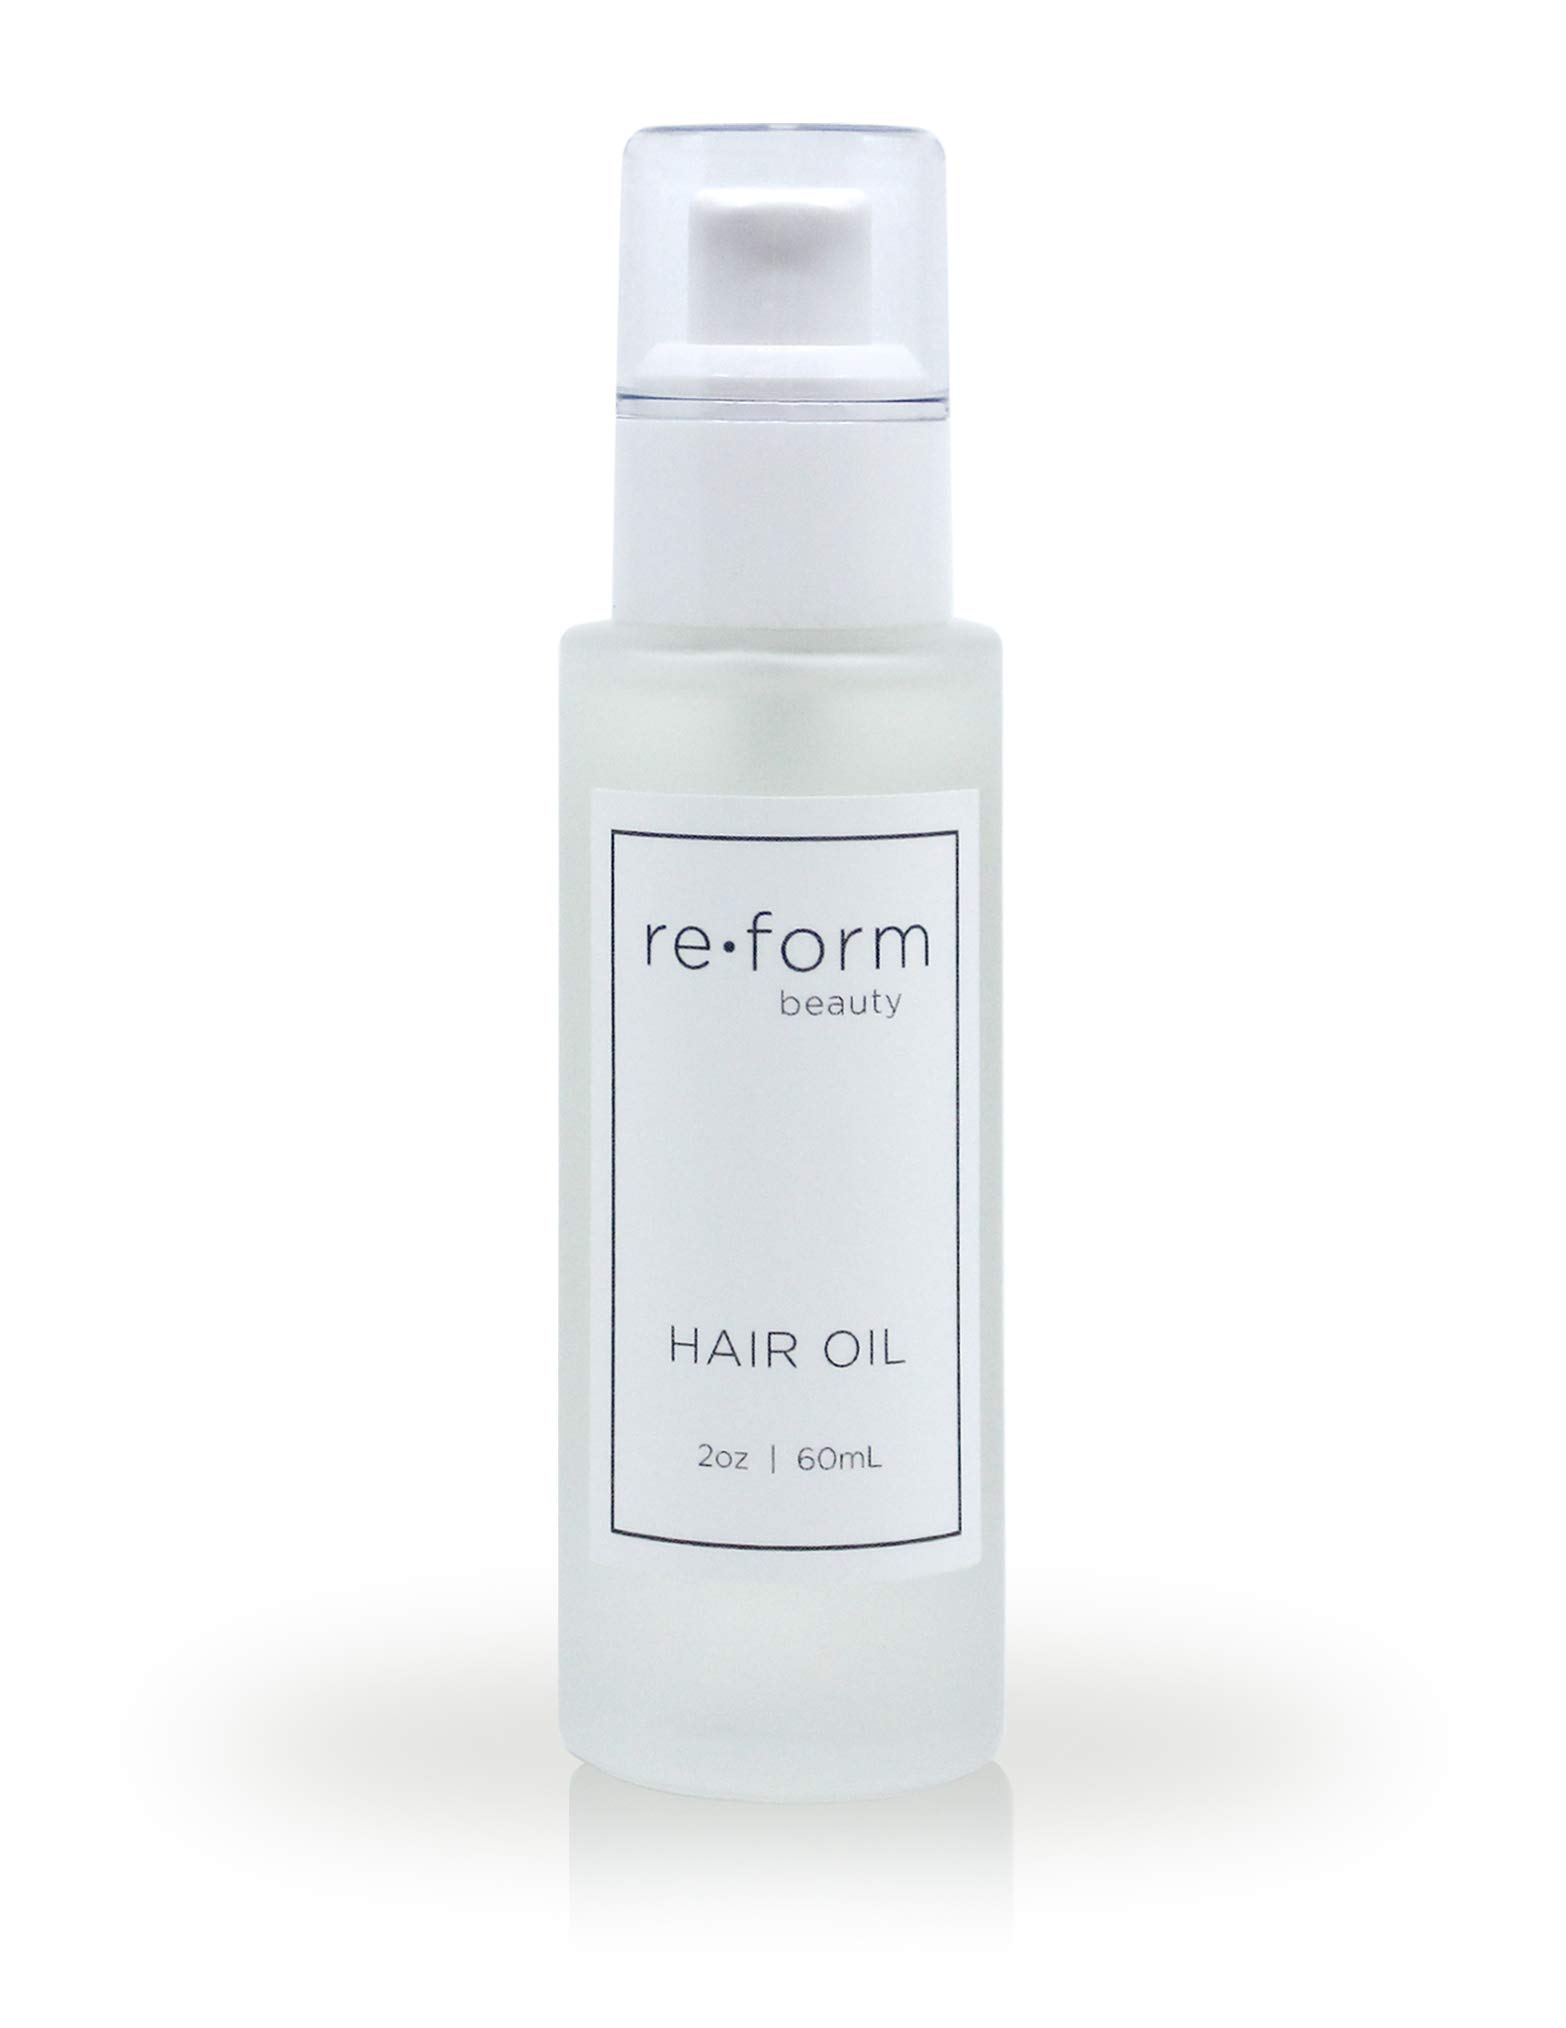 Reform Lightweight Hair Oil | Argan, Coconut, Moringa and Camellia Oils | Moisturizes, Nourishes, Protects Against Heat & UV | Color and Kertain Safe | Clean Ingredients | 2.0 fl oz